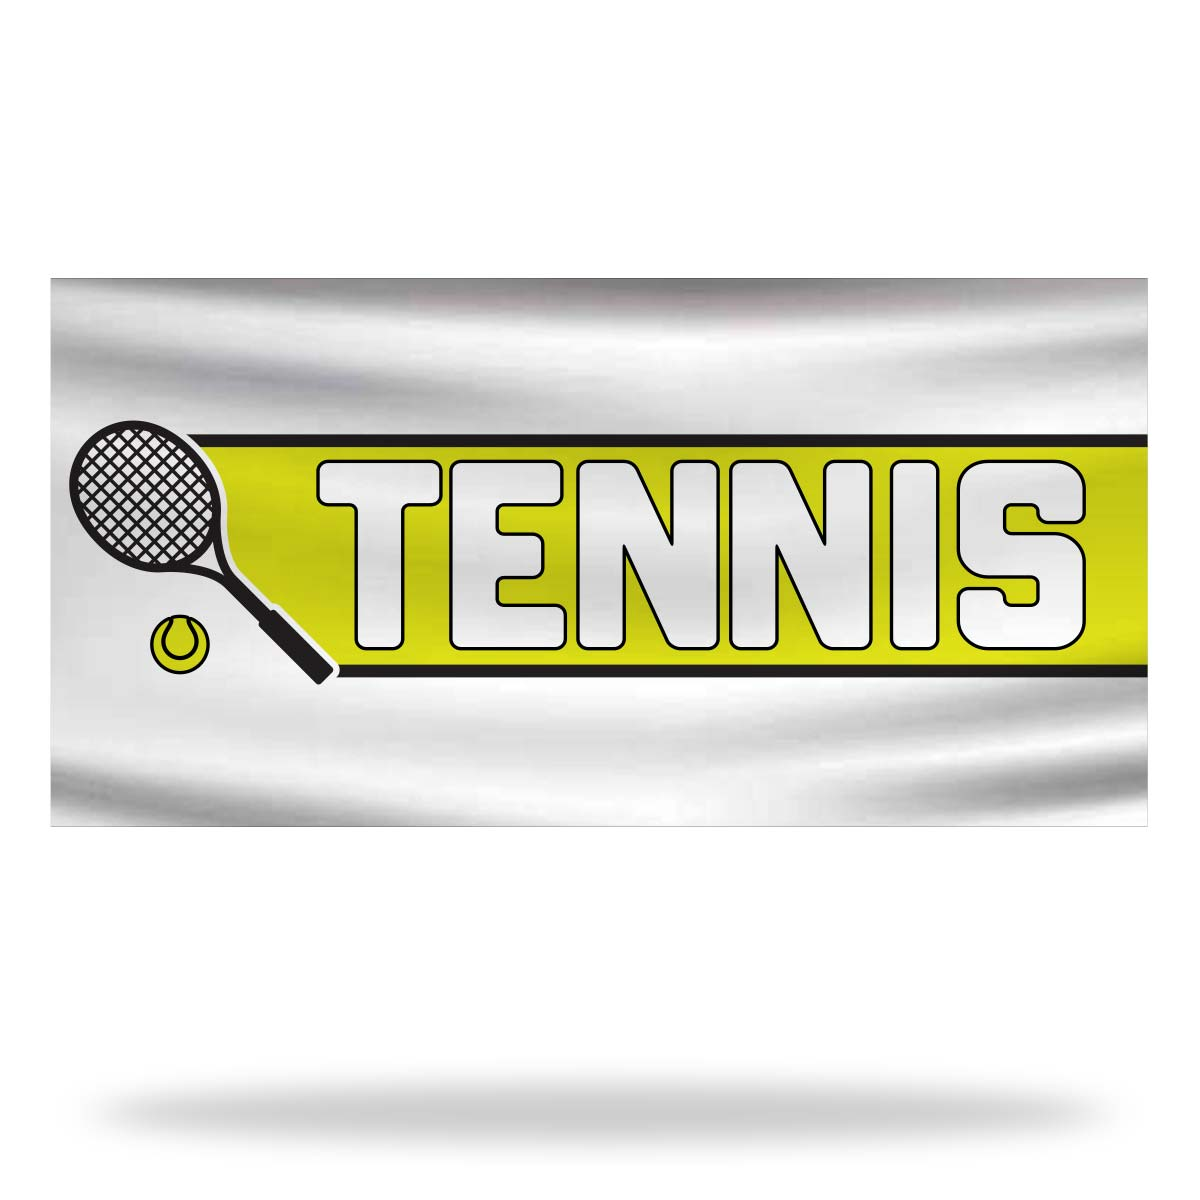 Tennis Flags & Banners Design 03